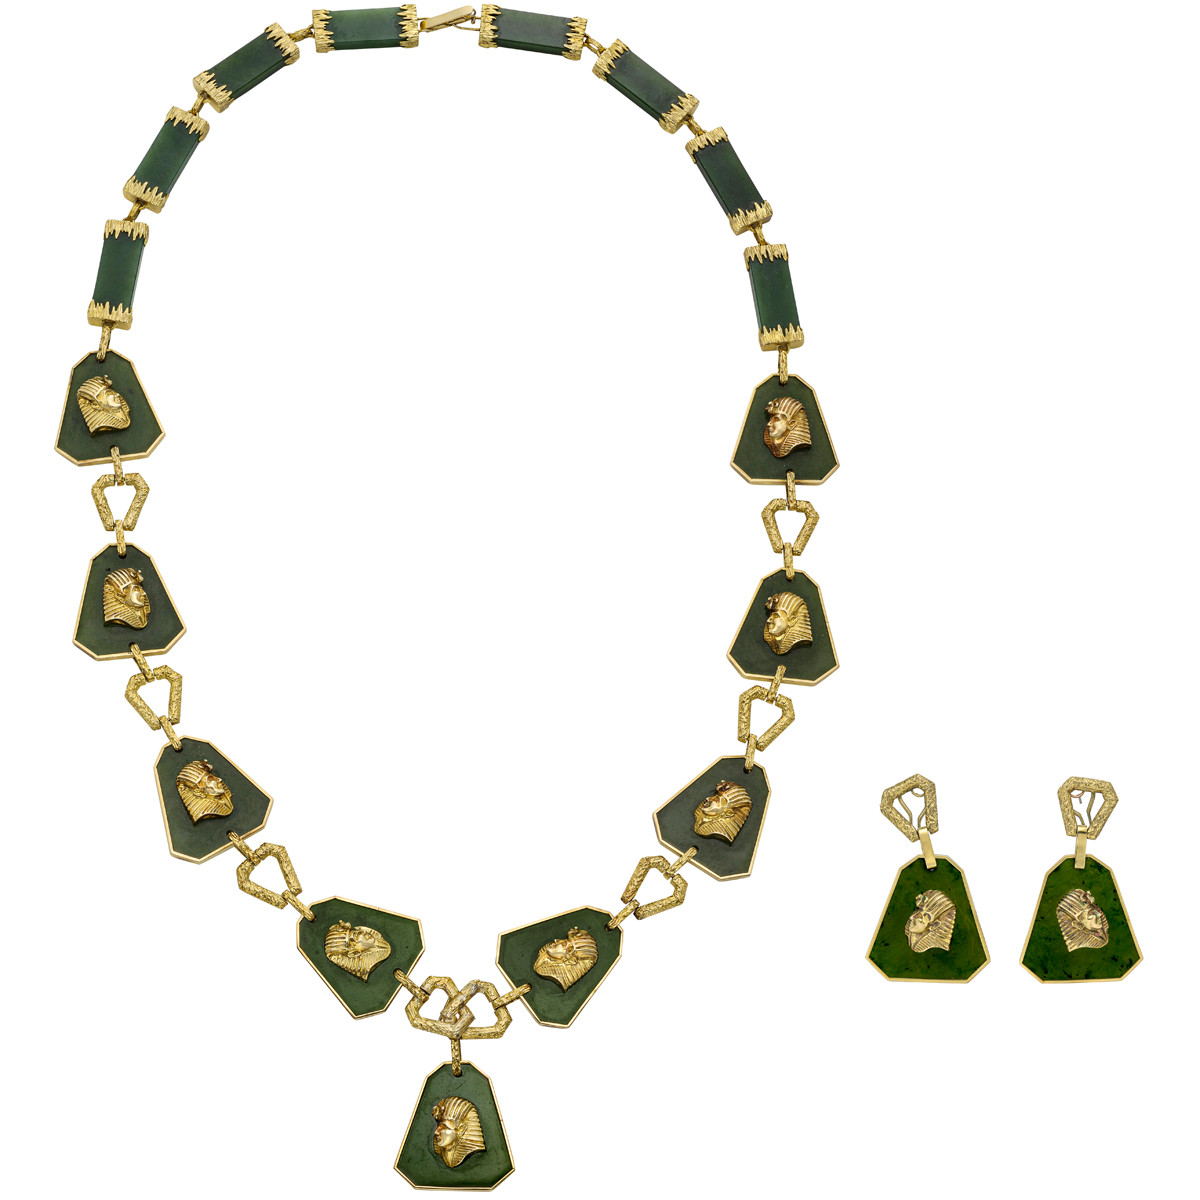 Jade & 14k Gold Necklace with Earrings